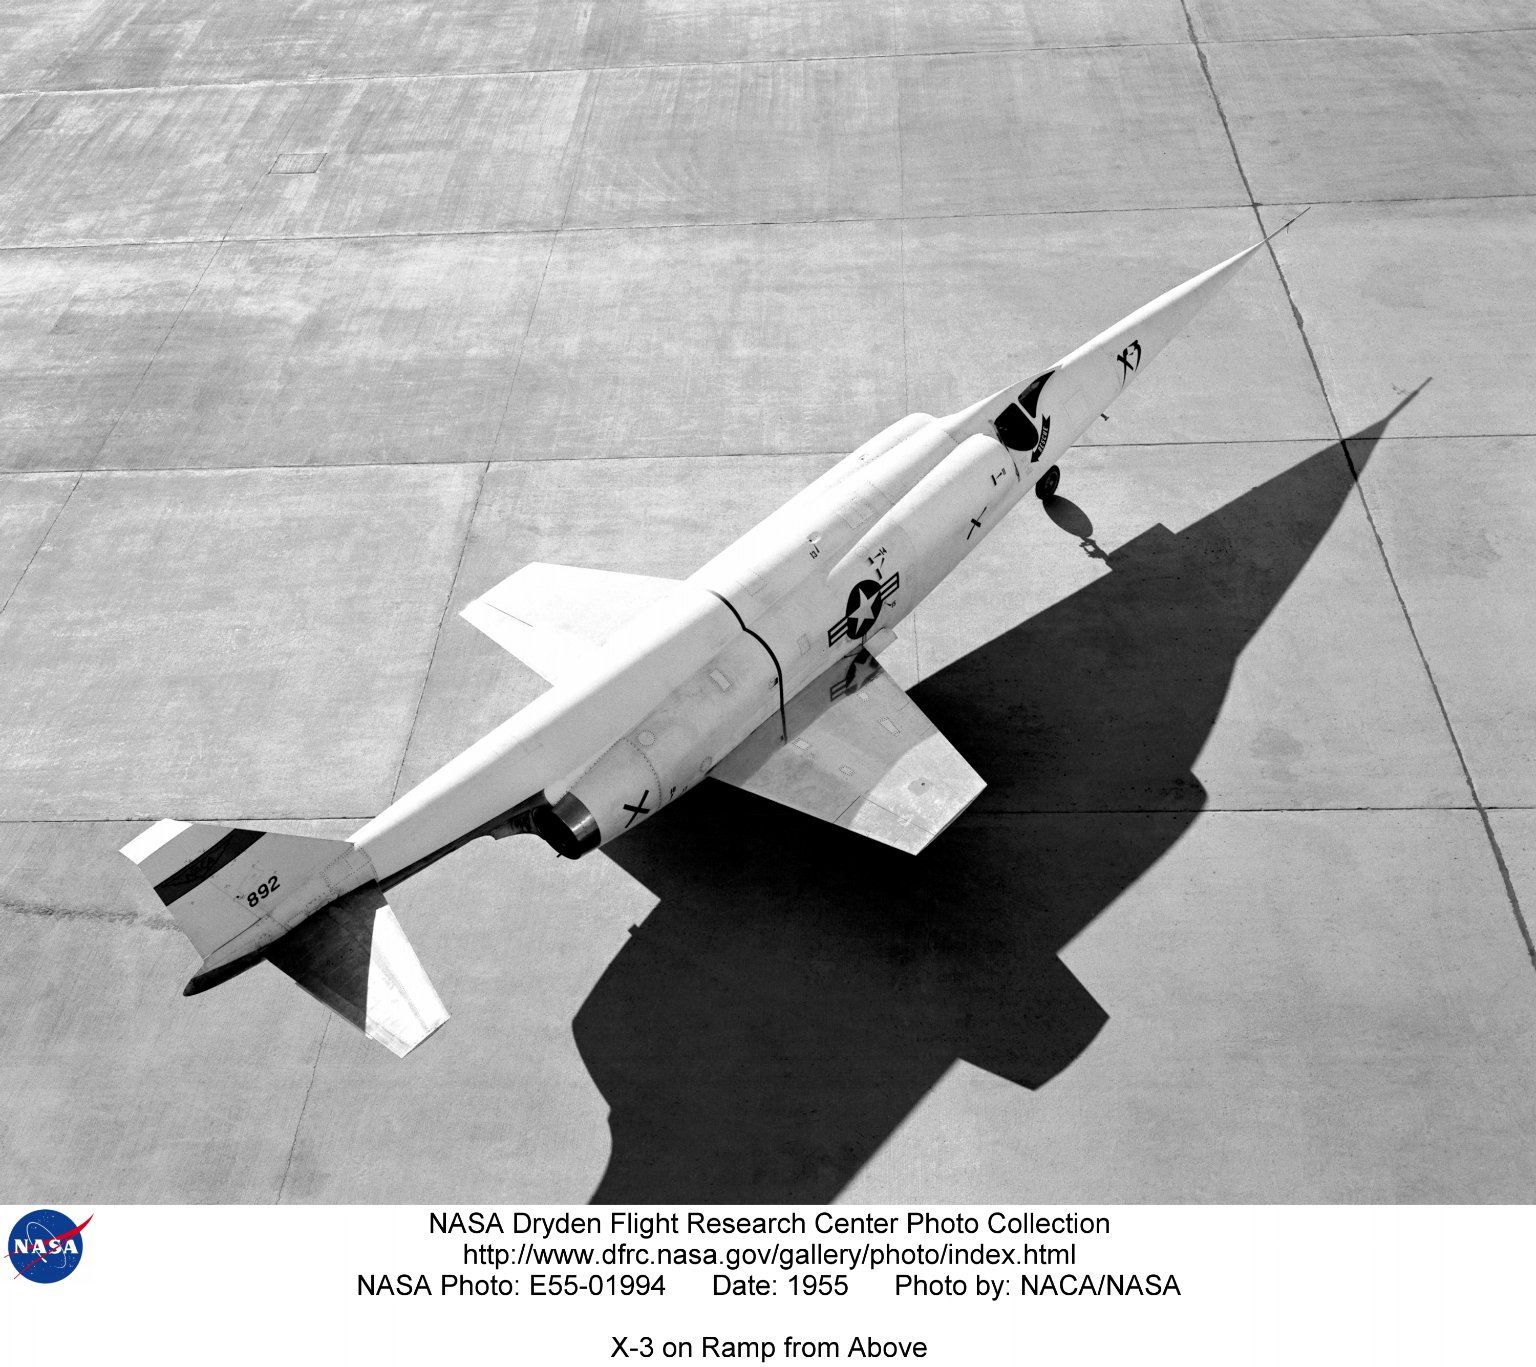 X-3 on Ramp from Above